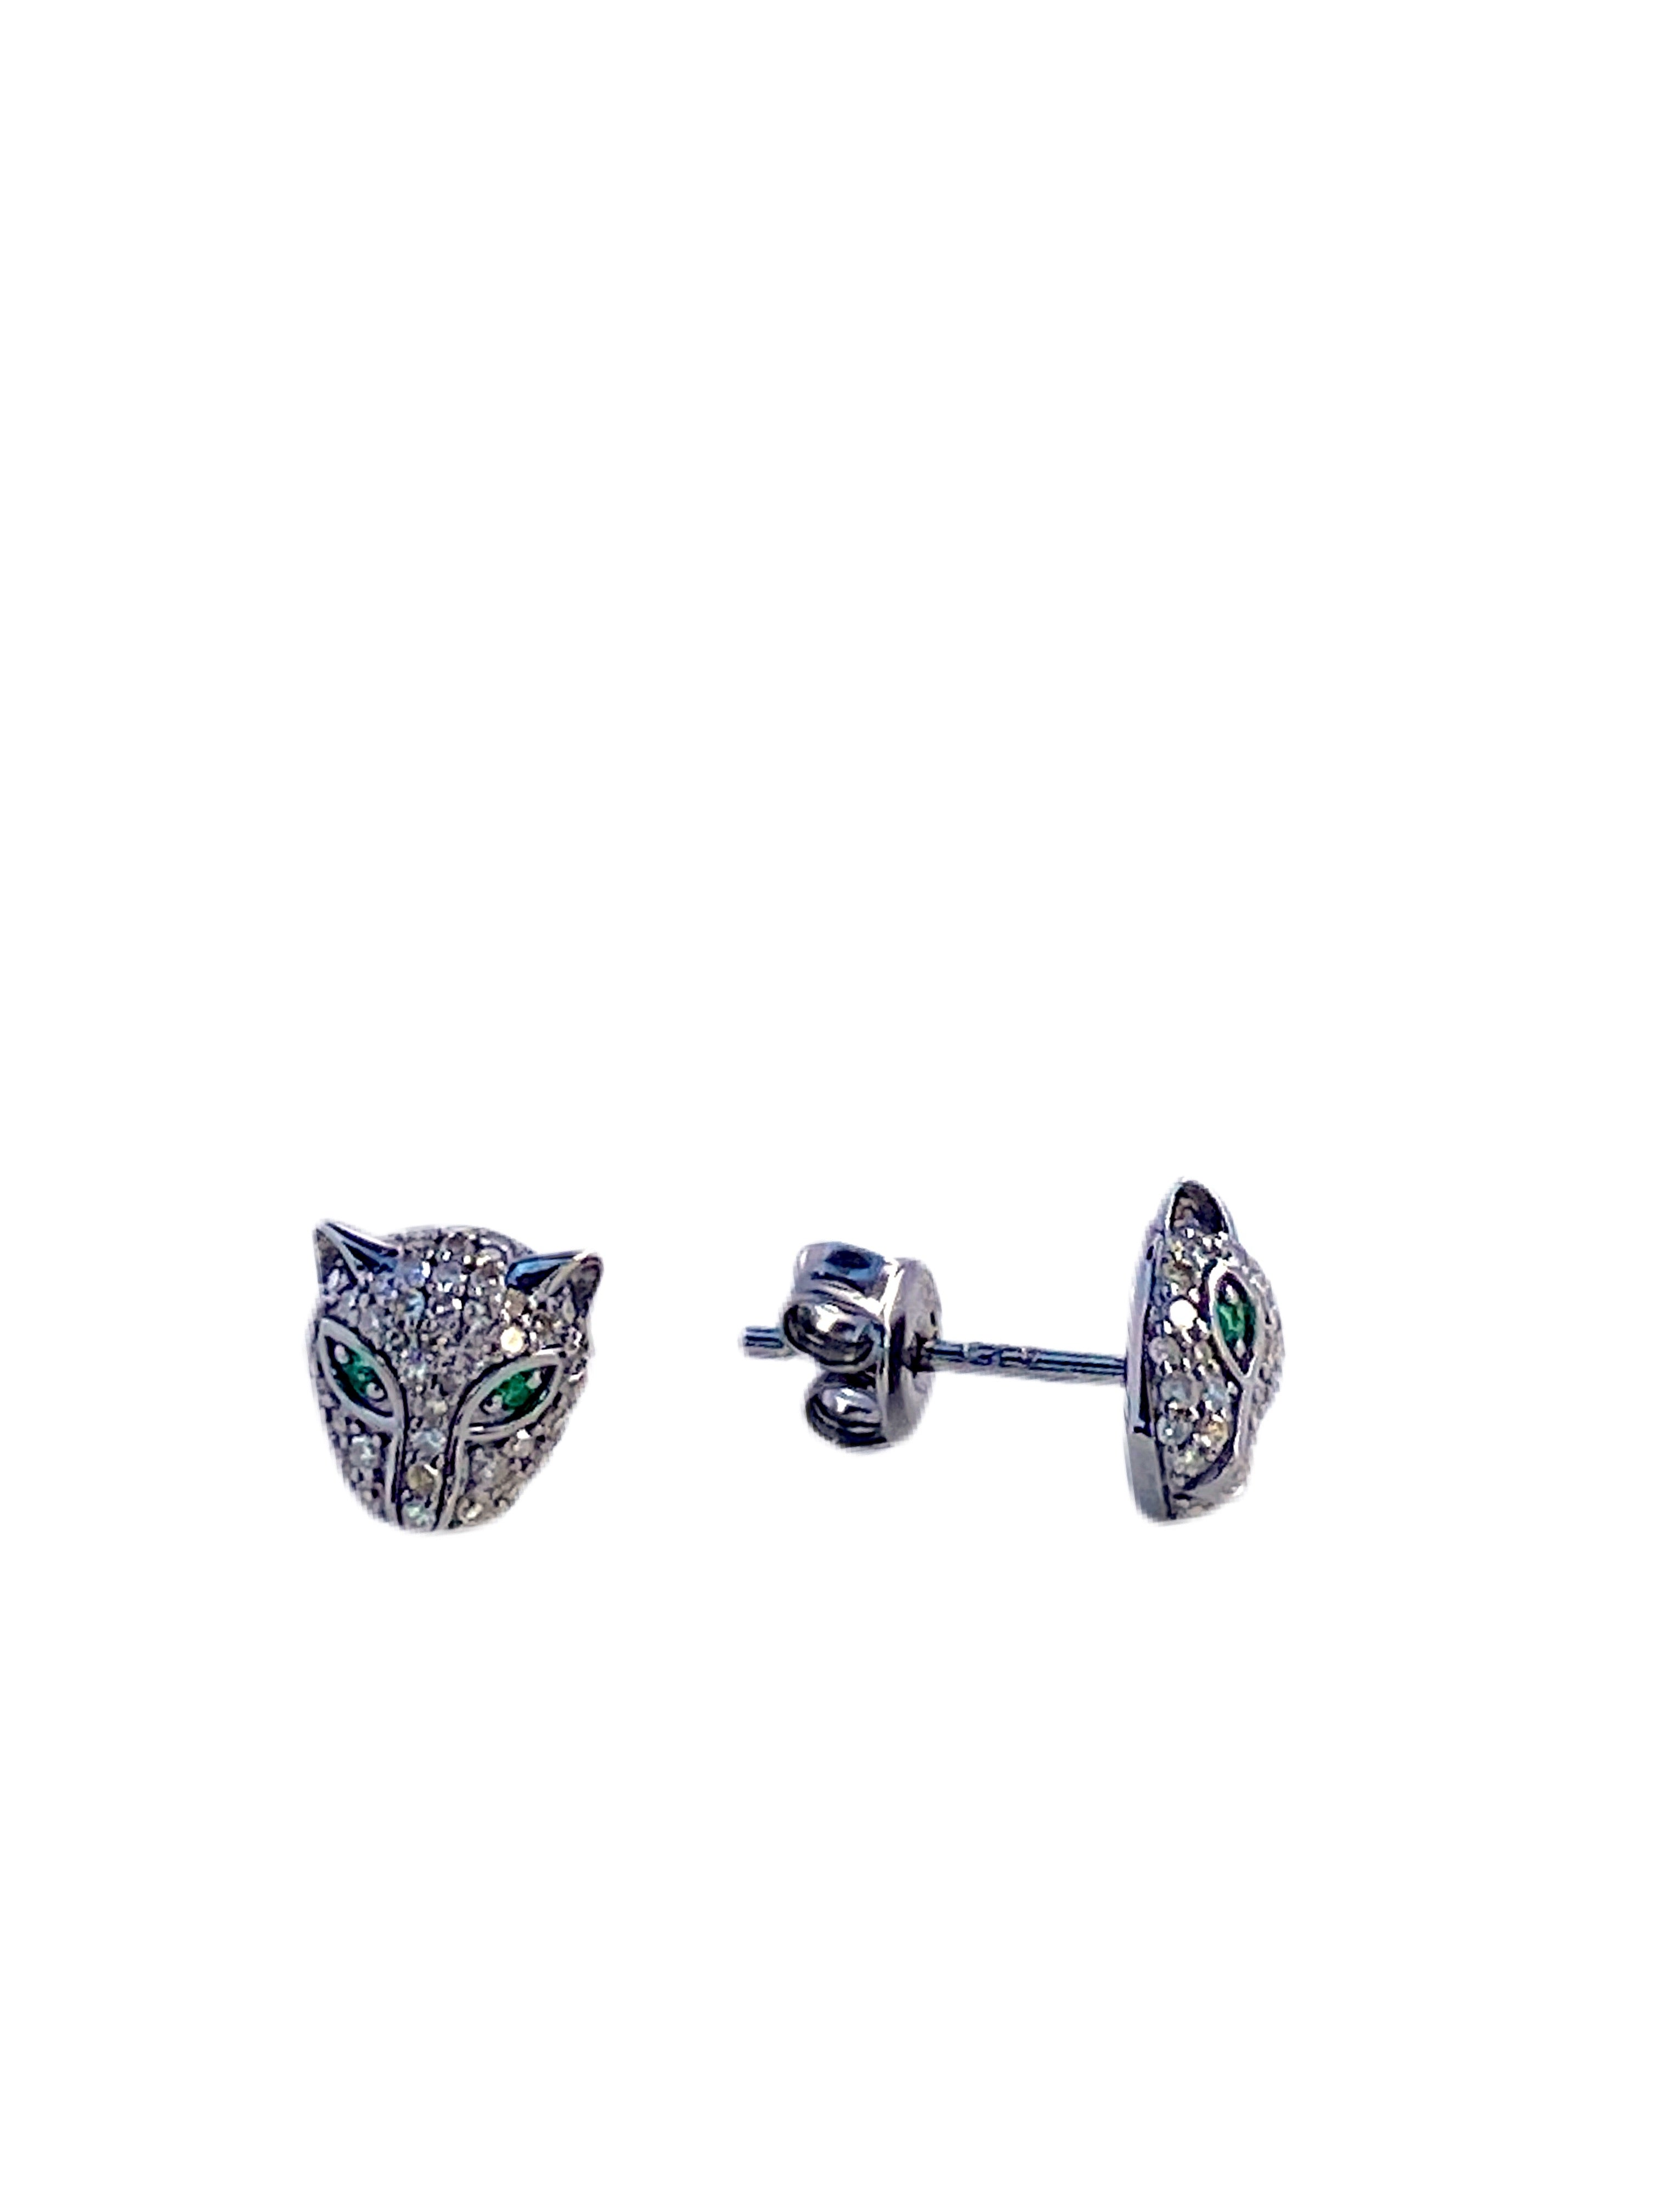 S.Row Designs Sterling Silver and Diamond Panther Earrings